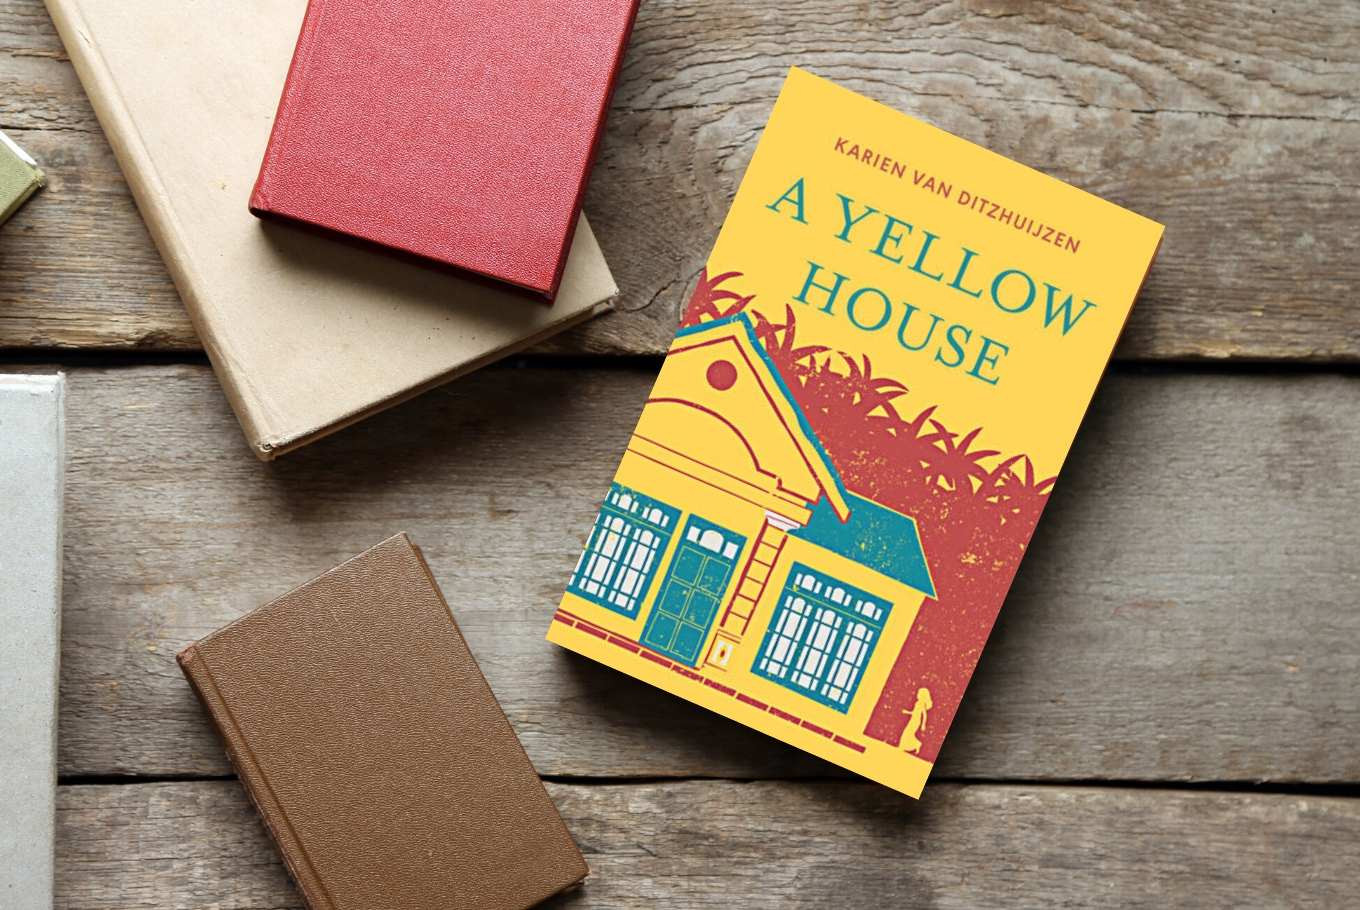 'A Yellow House' opens window to the lives of Indonesian domestic workers in Singapore